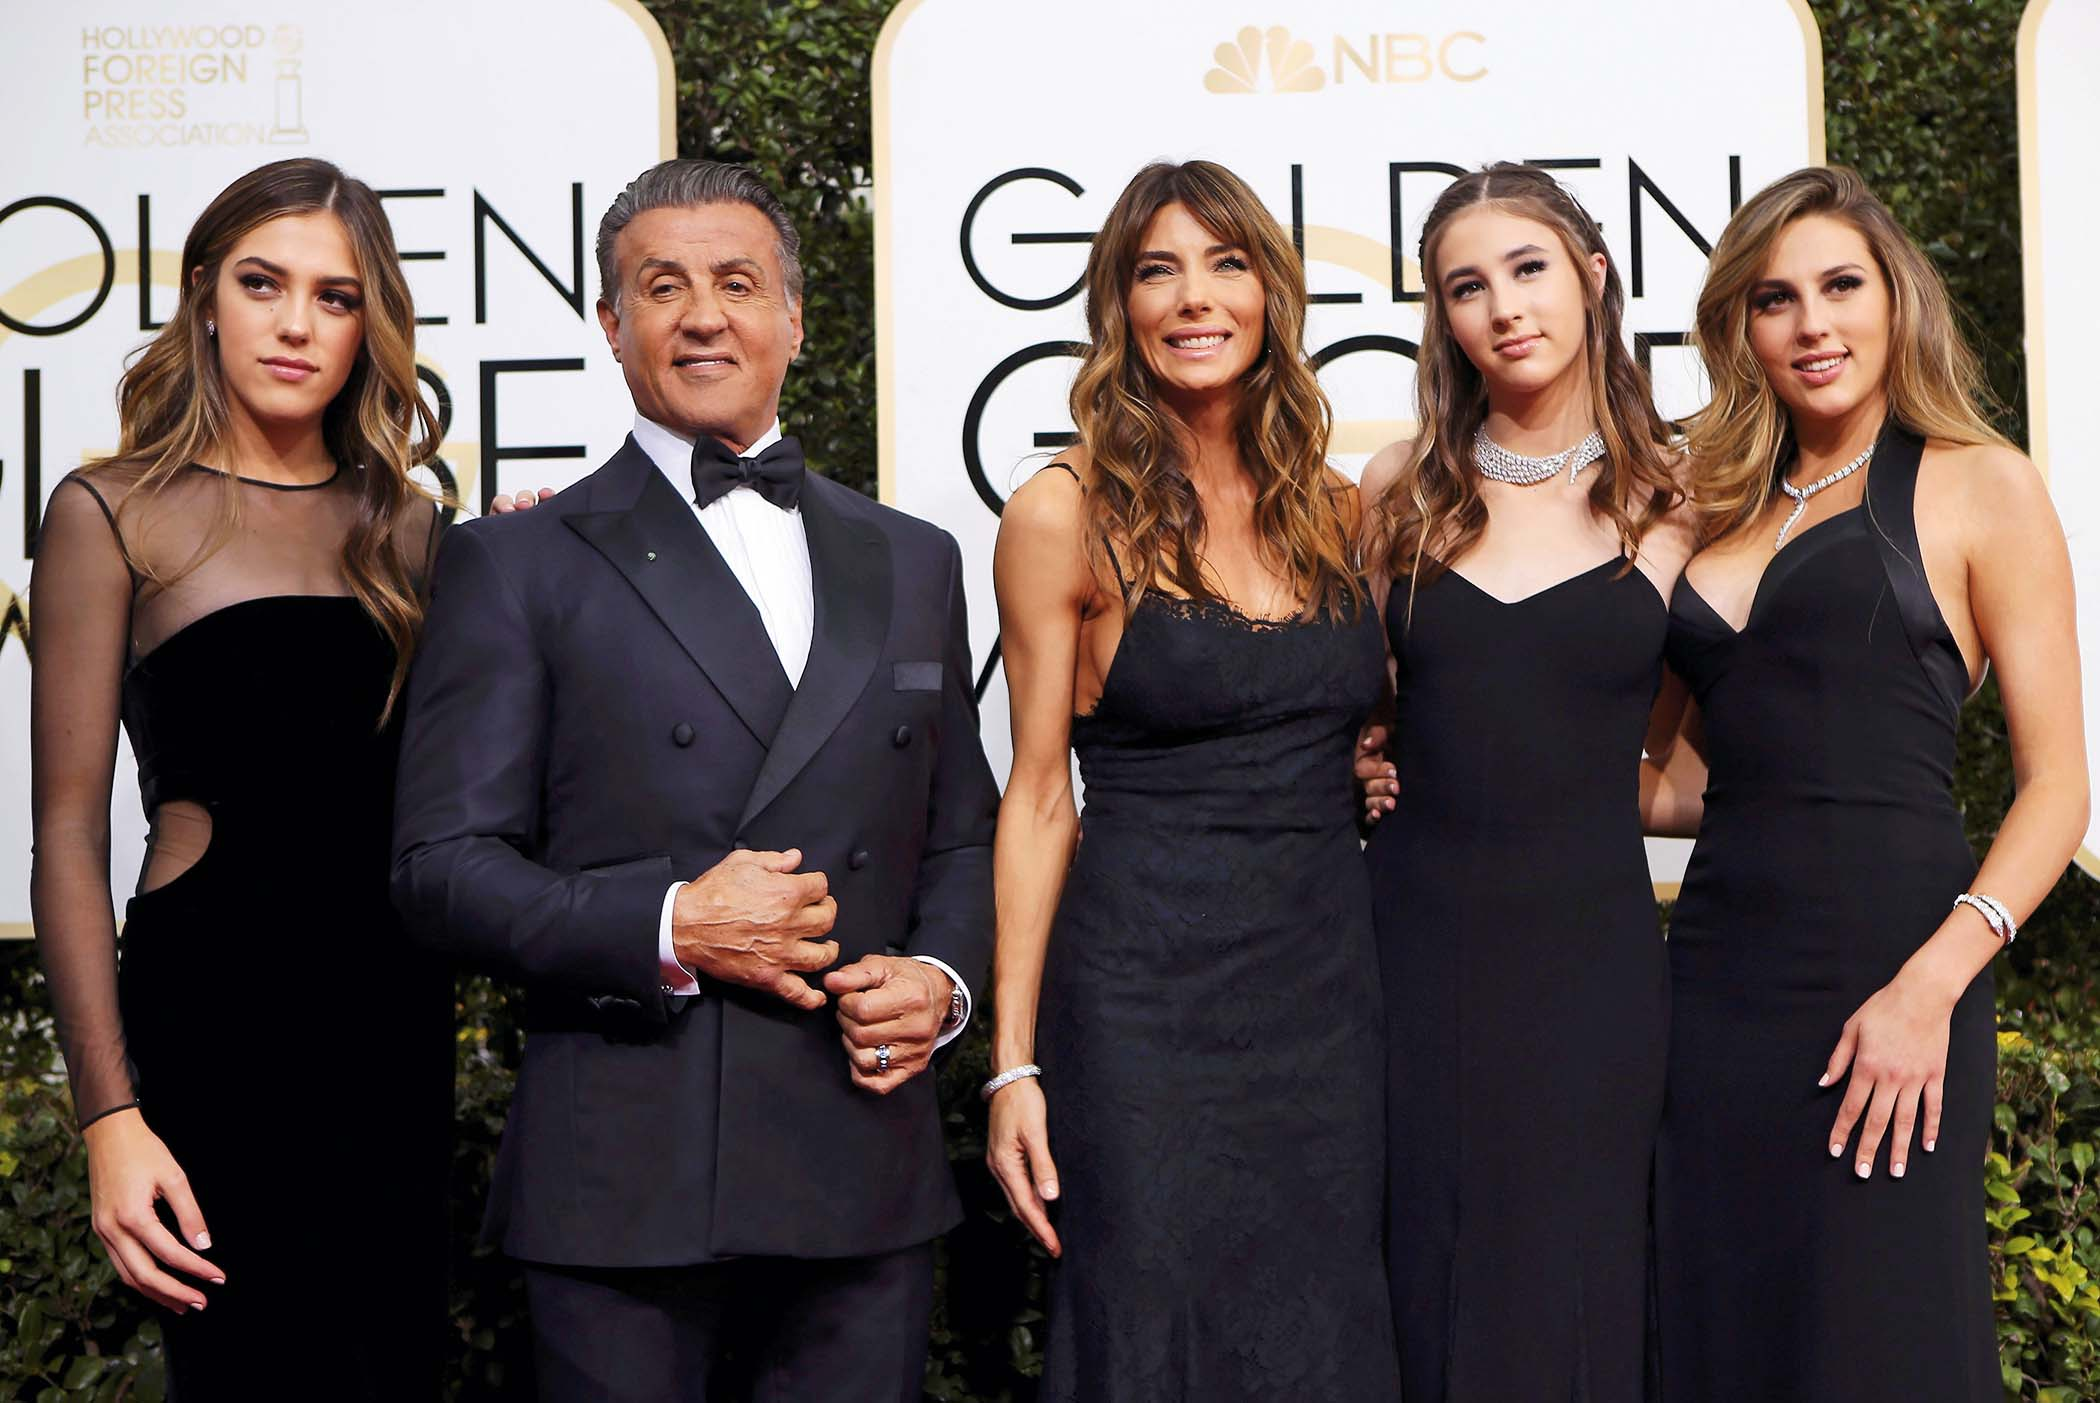 Actor Sylvester Stallone poses with his wife Jennifer Flavin (C), and their daughters, 2017 Miss Golden Globe Sistine Stallone (L), Scarlet Stallone (2nd R) and Sophia Stallone during the 74th Annual Golden Globe Awards in Beverly Hills, California, U.S., January 8, 2017.   REUTERS/Mike Blake     TPX IMAGES OF THE DAY - RC1C5D5BA8A0